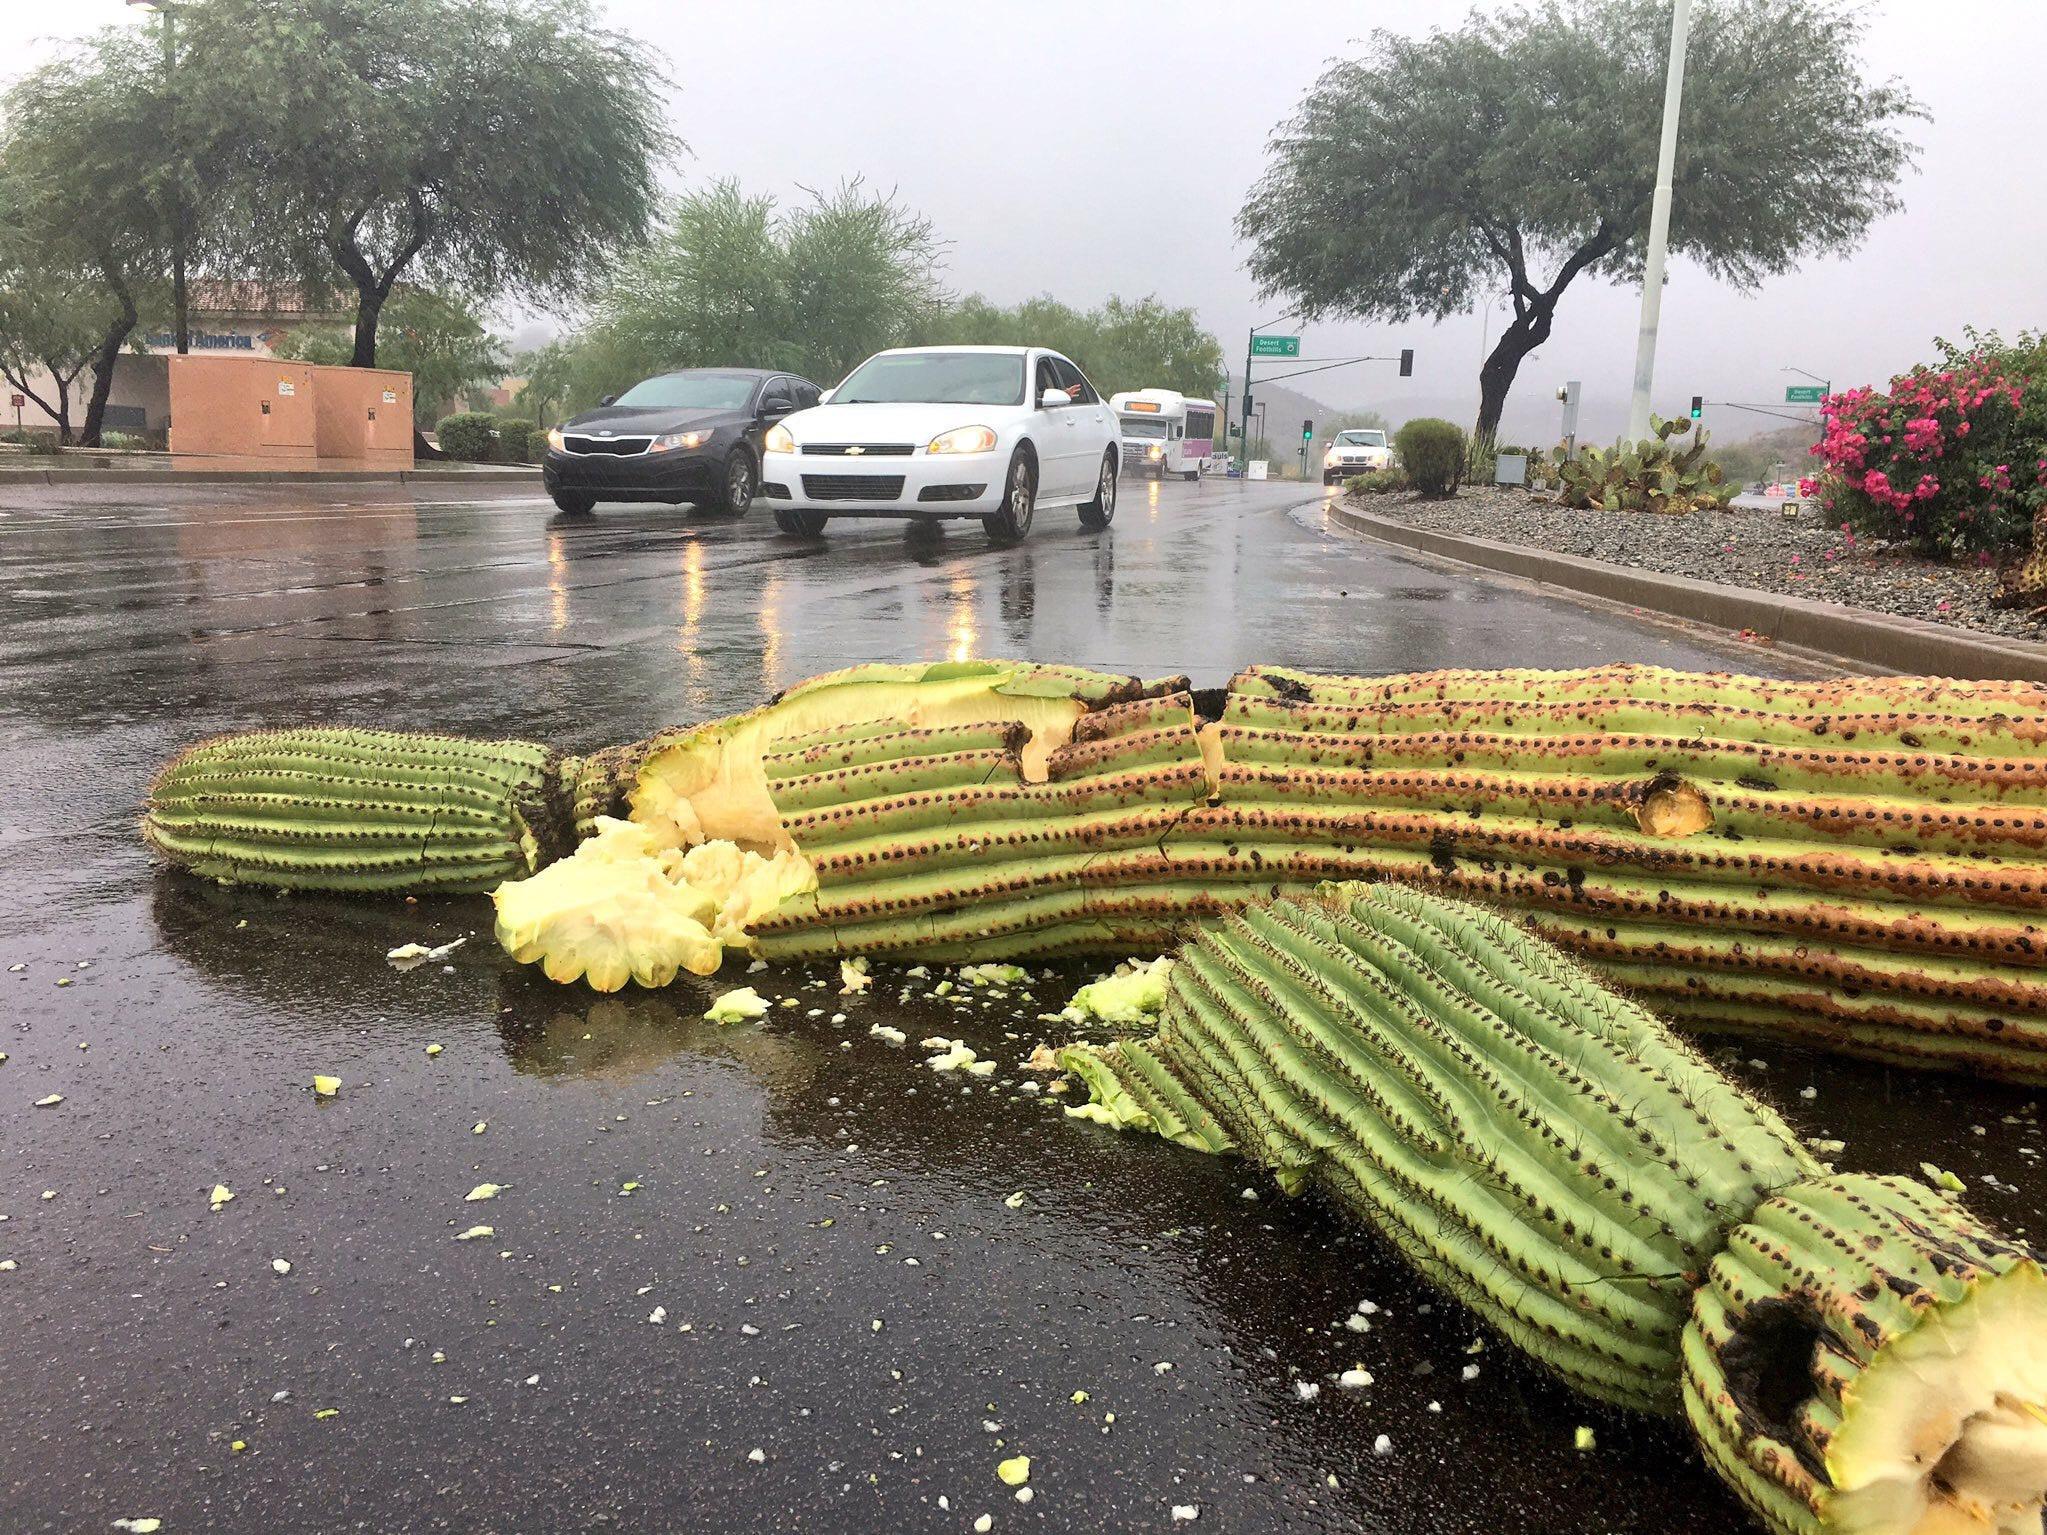 A cactus fell on the road on Chandler Boulevard. Remnants of Hurricane Rosa on Tuesday morning, bringing moderate rainfall and some flooding to the Valley.